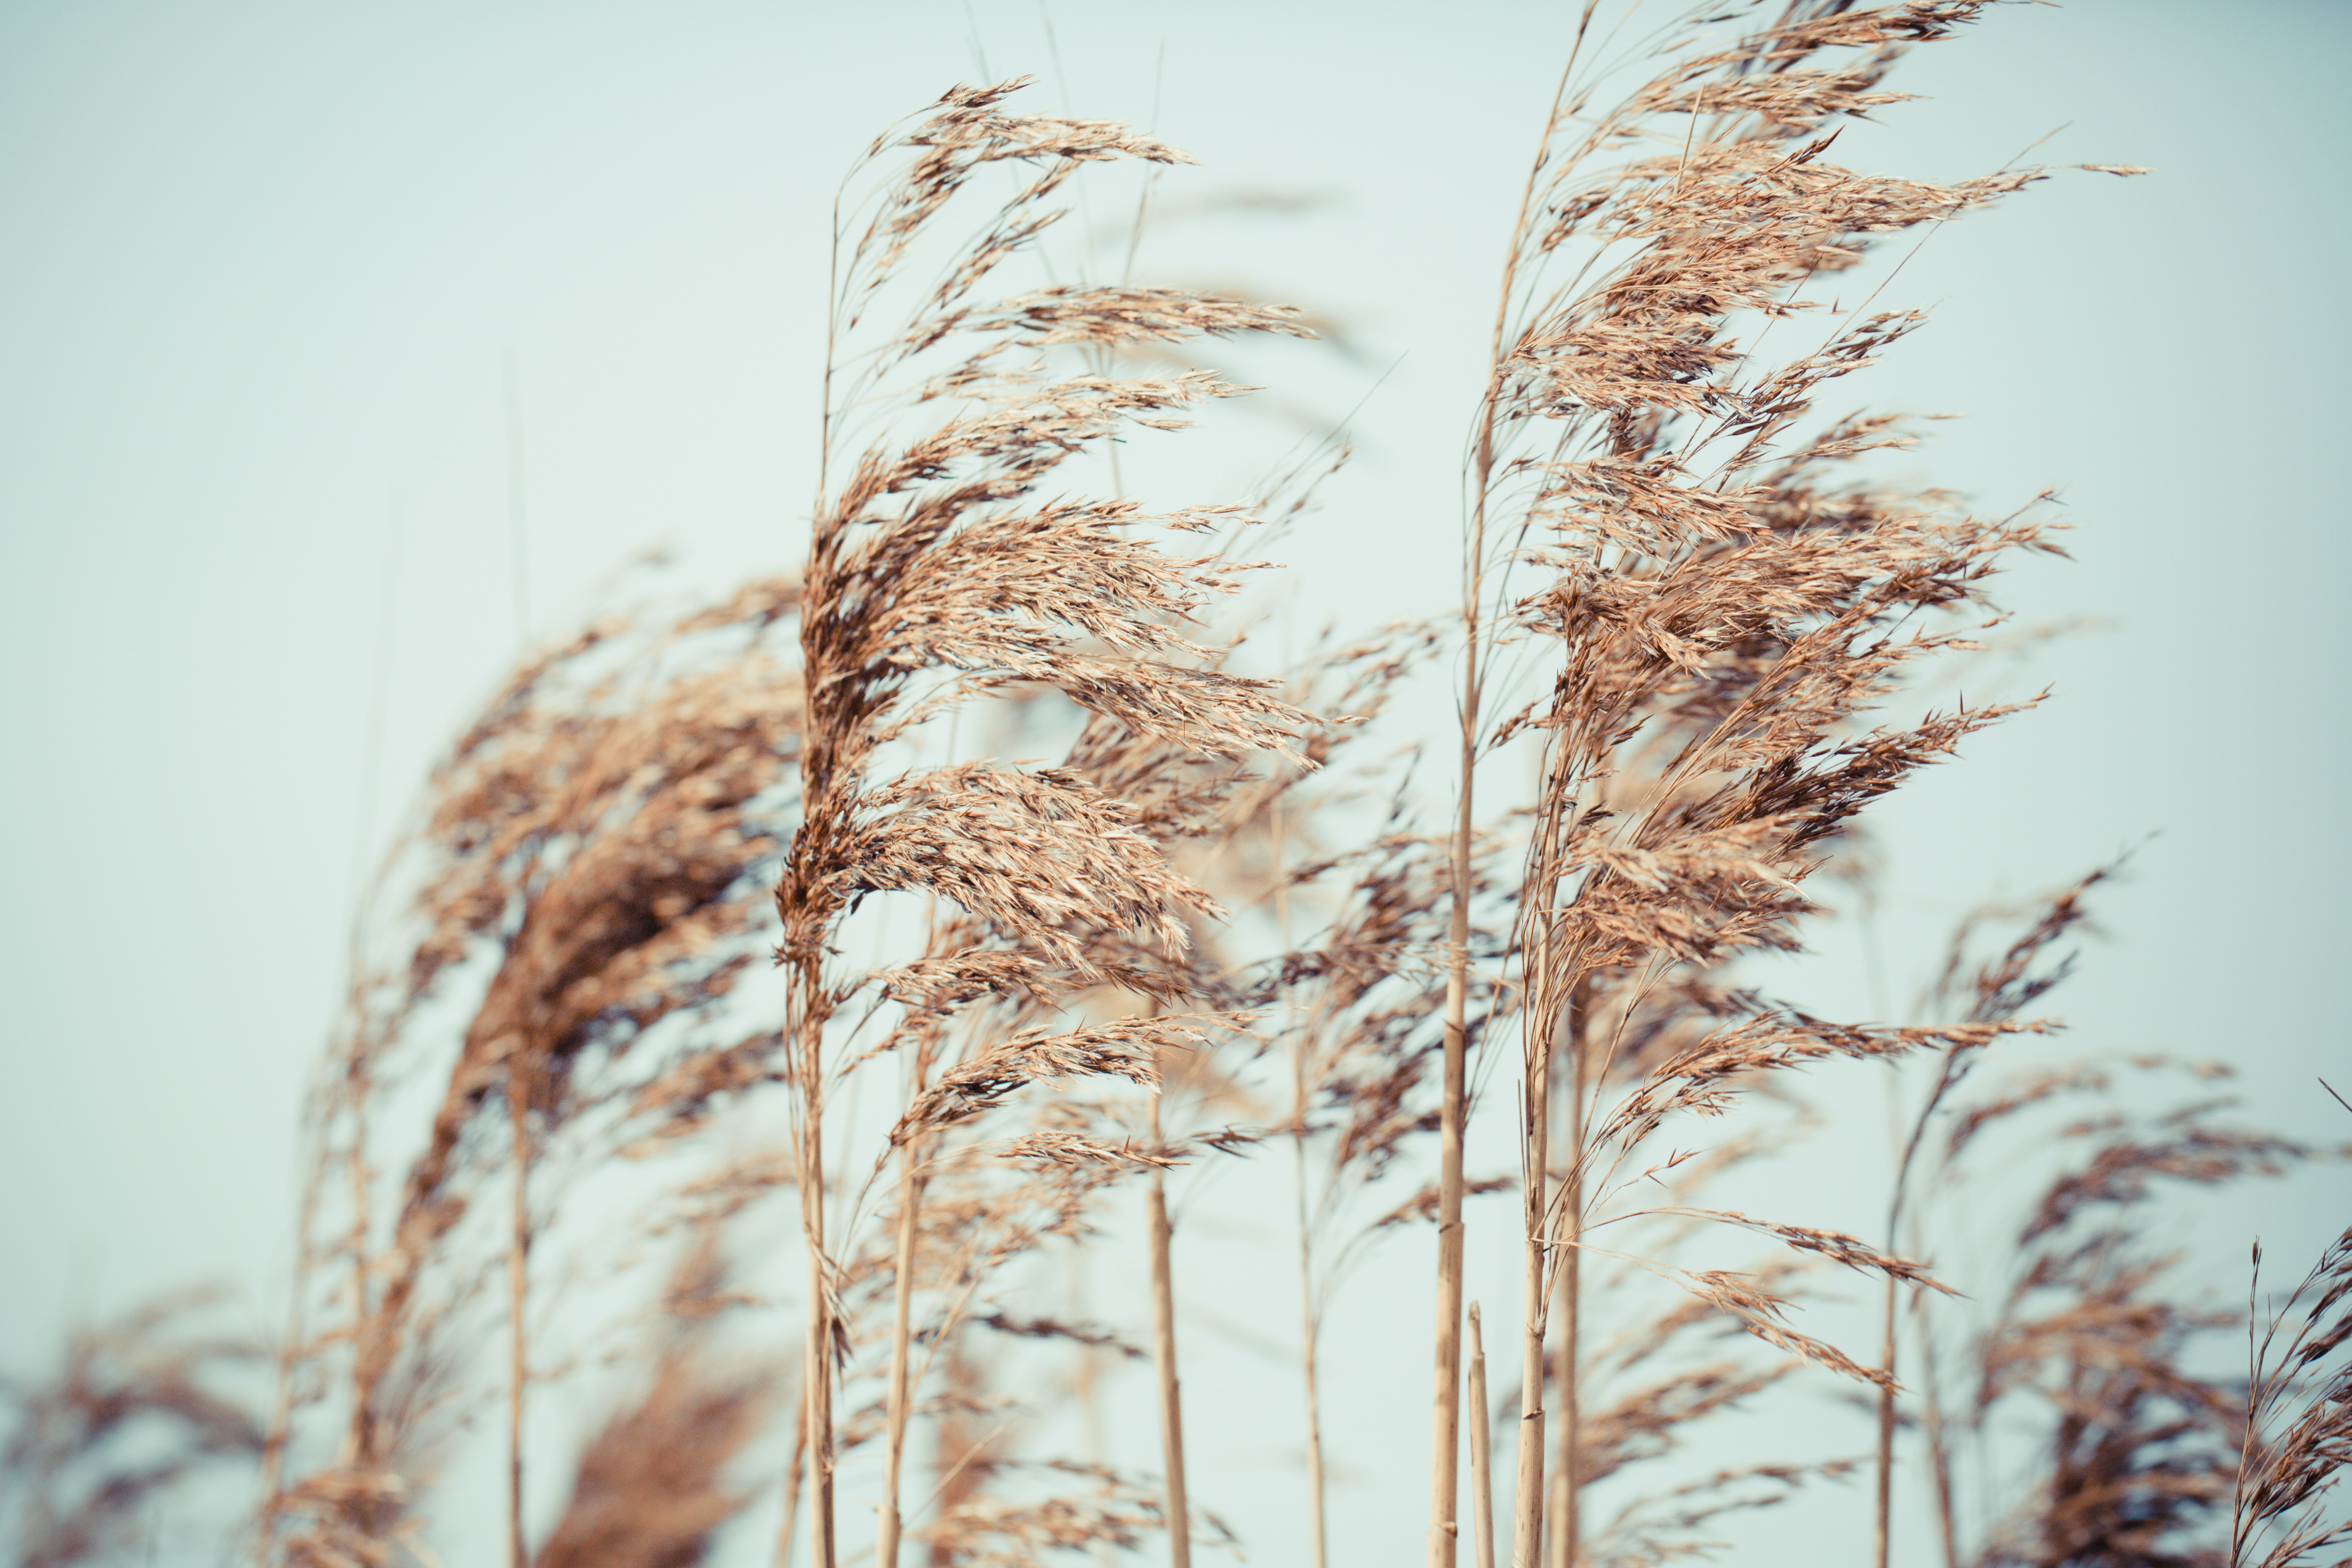 photography of plants under white sky during daytime